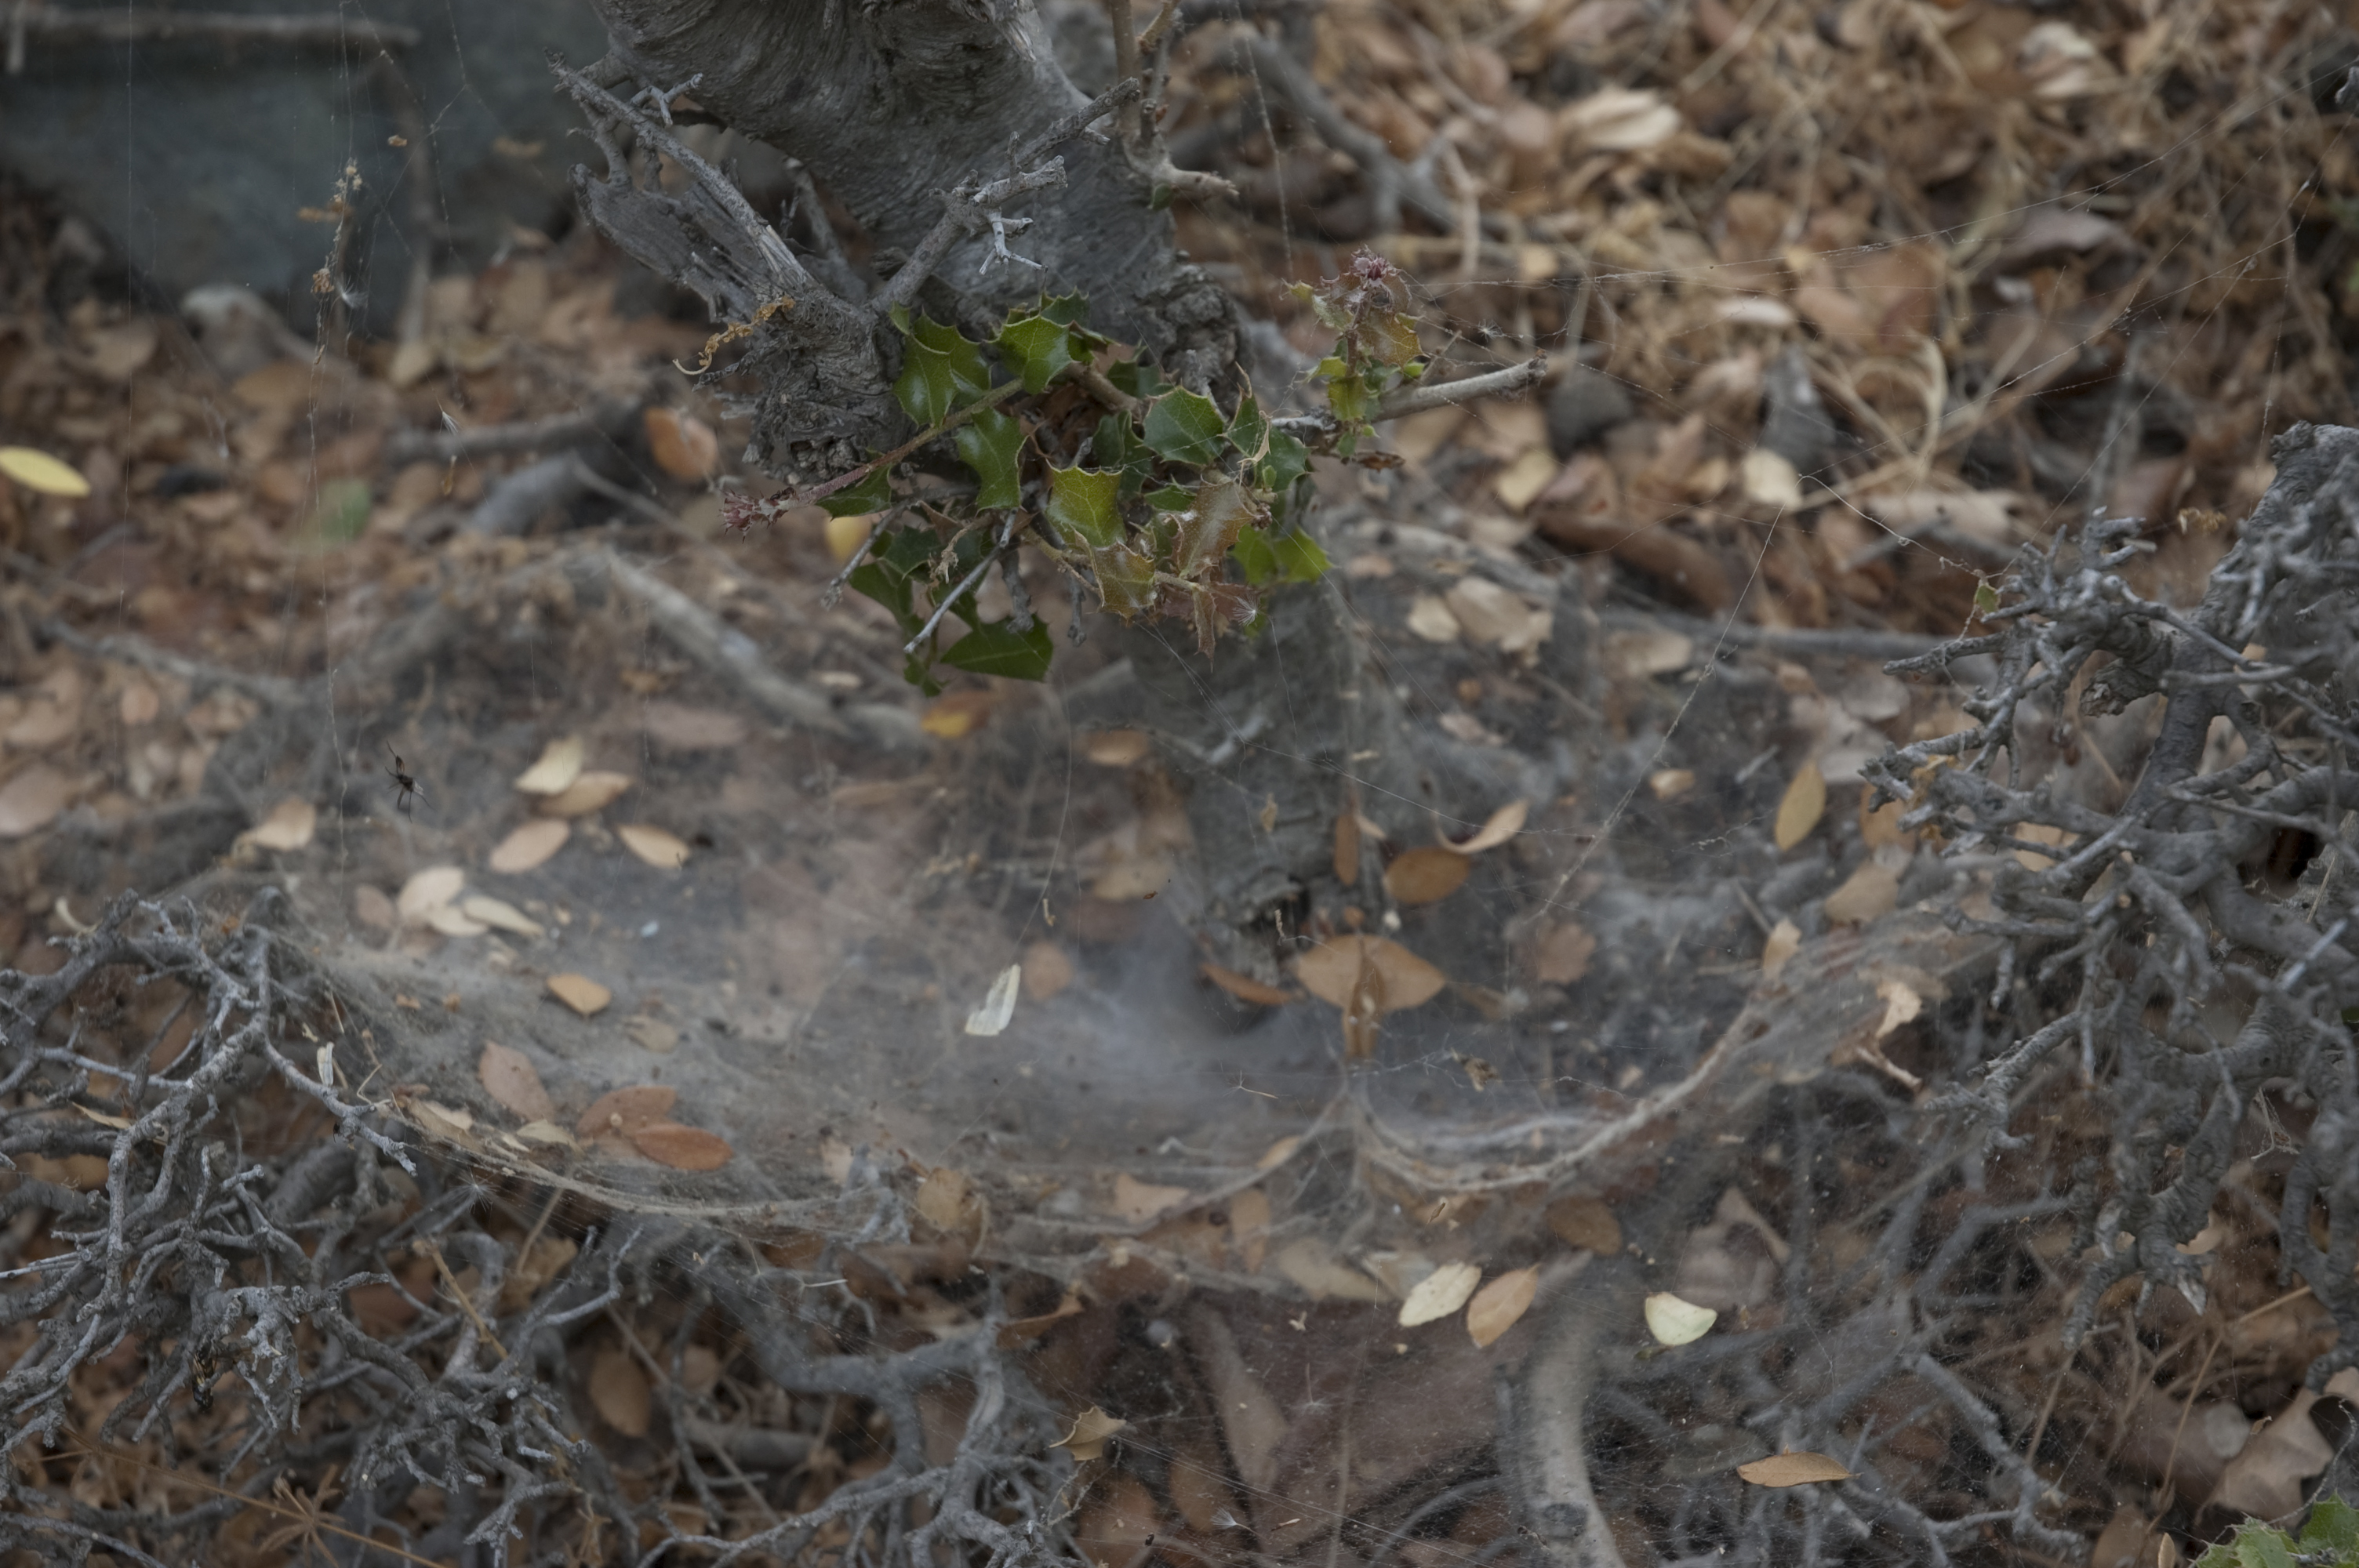 One of the many spider dens that are all around the site